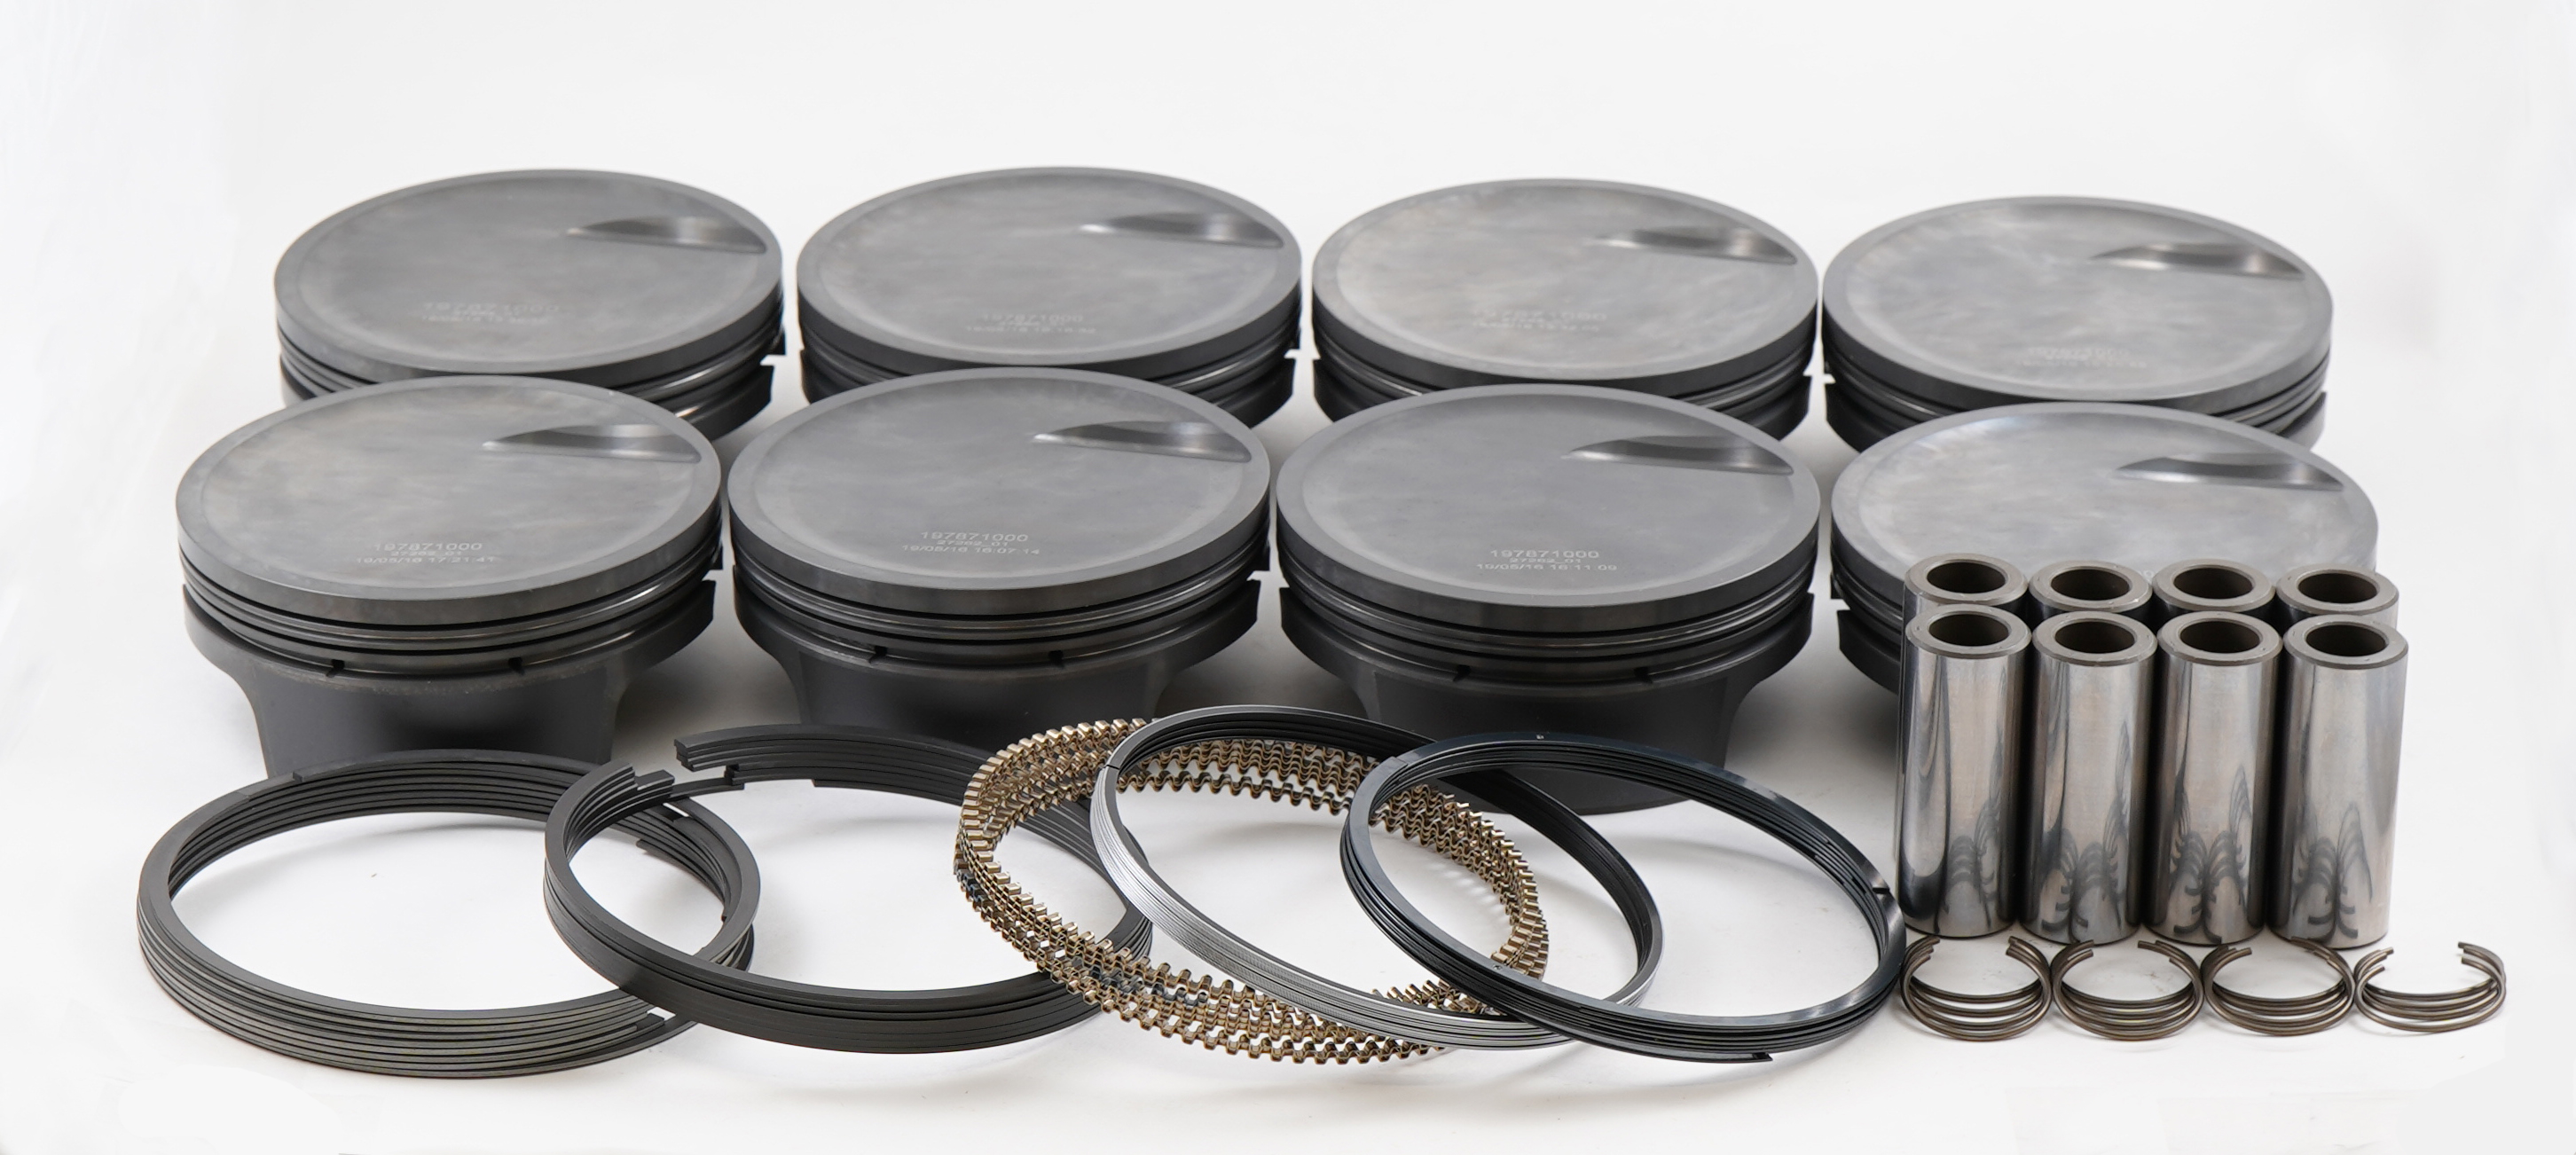 MAHLE Motorsport Expands Big Block Chevy Line Up – Introducing the Big Block Chevy 632 Forged PowerPak Piston Kit